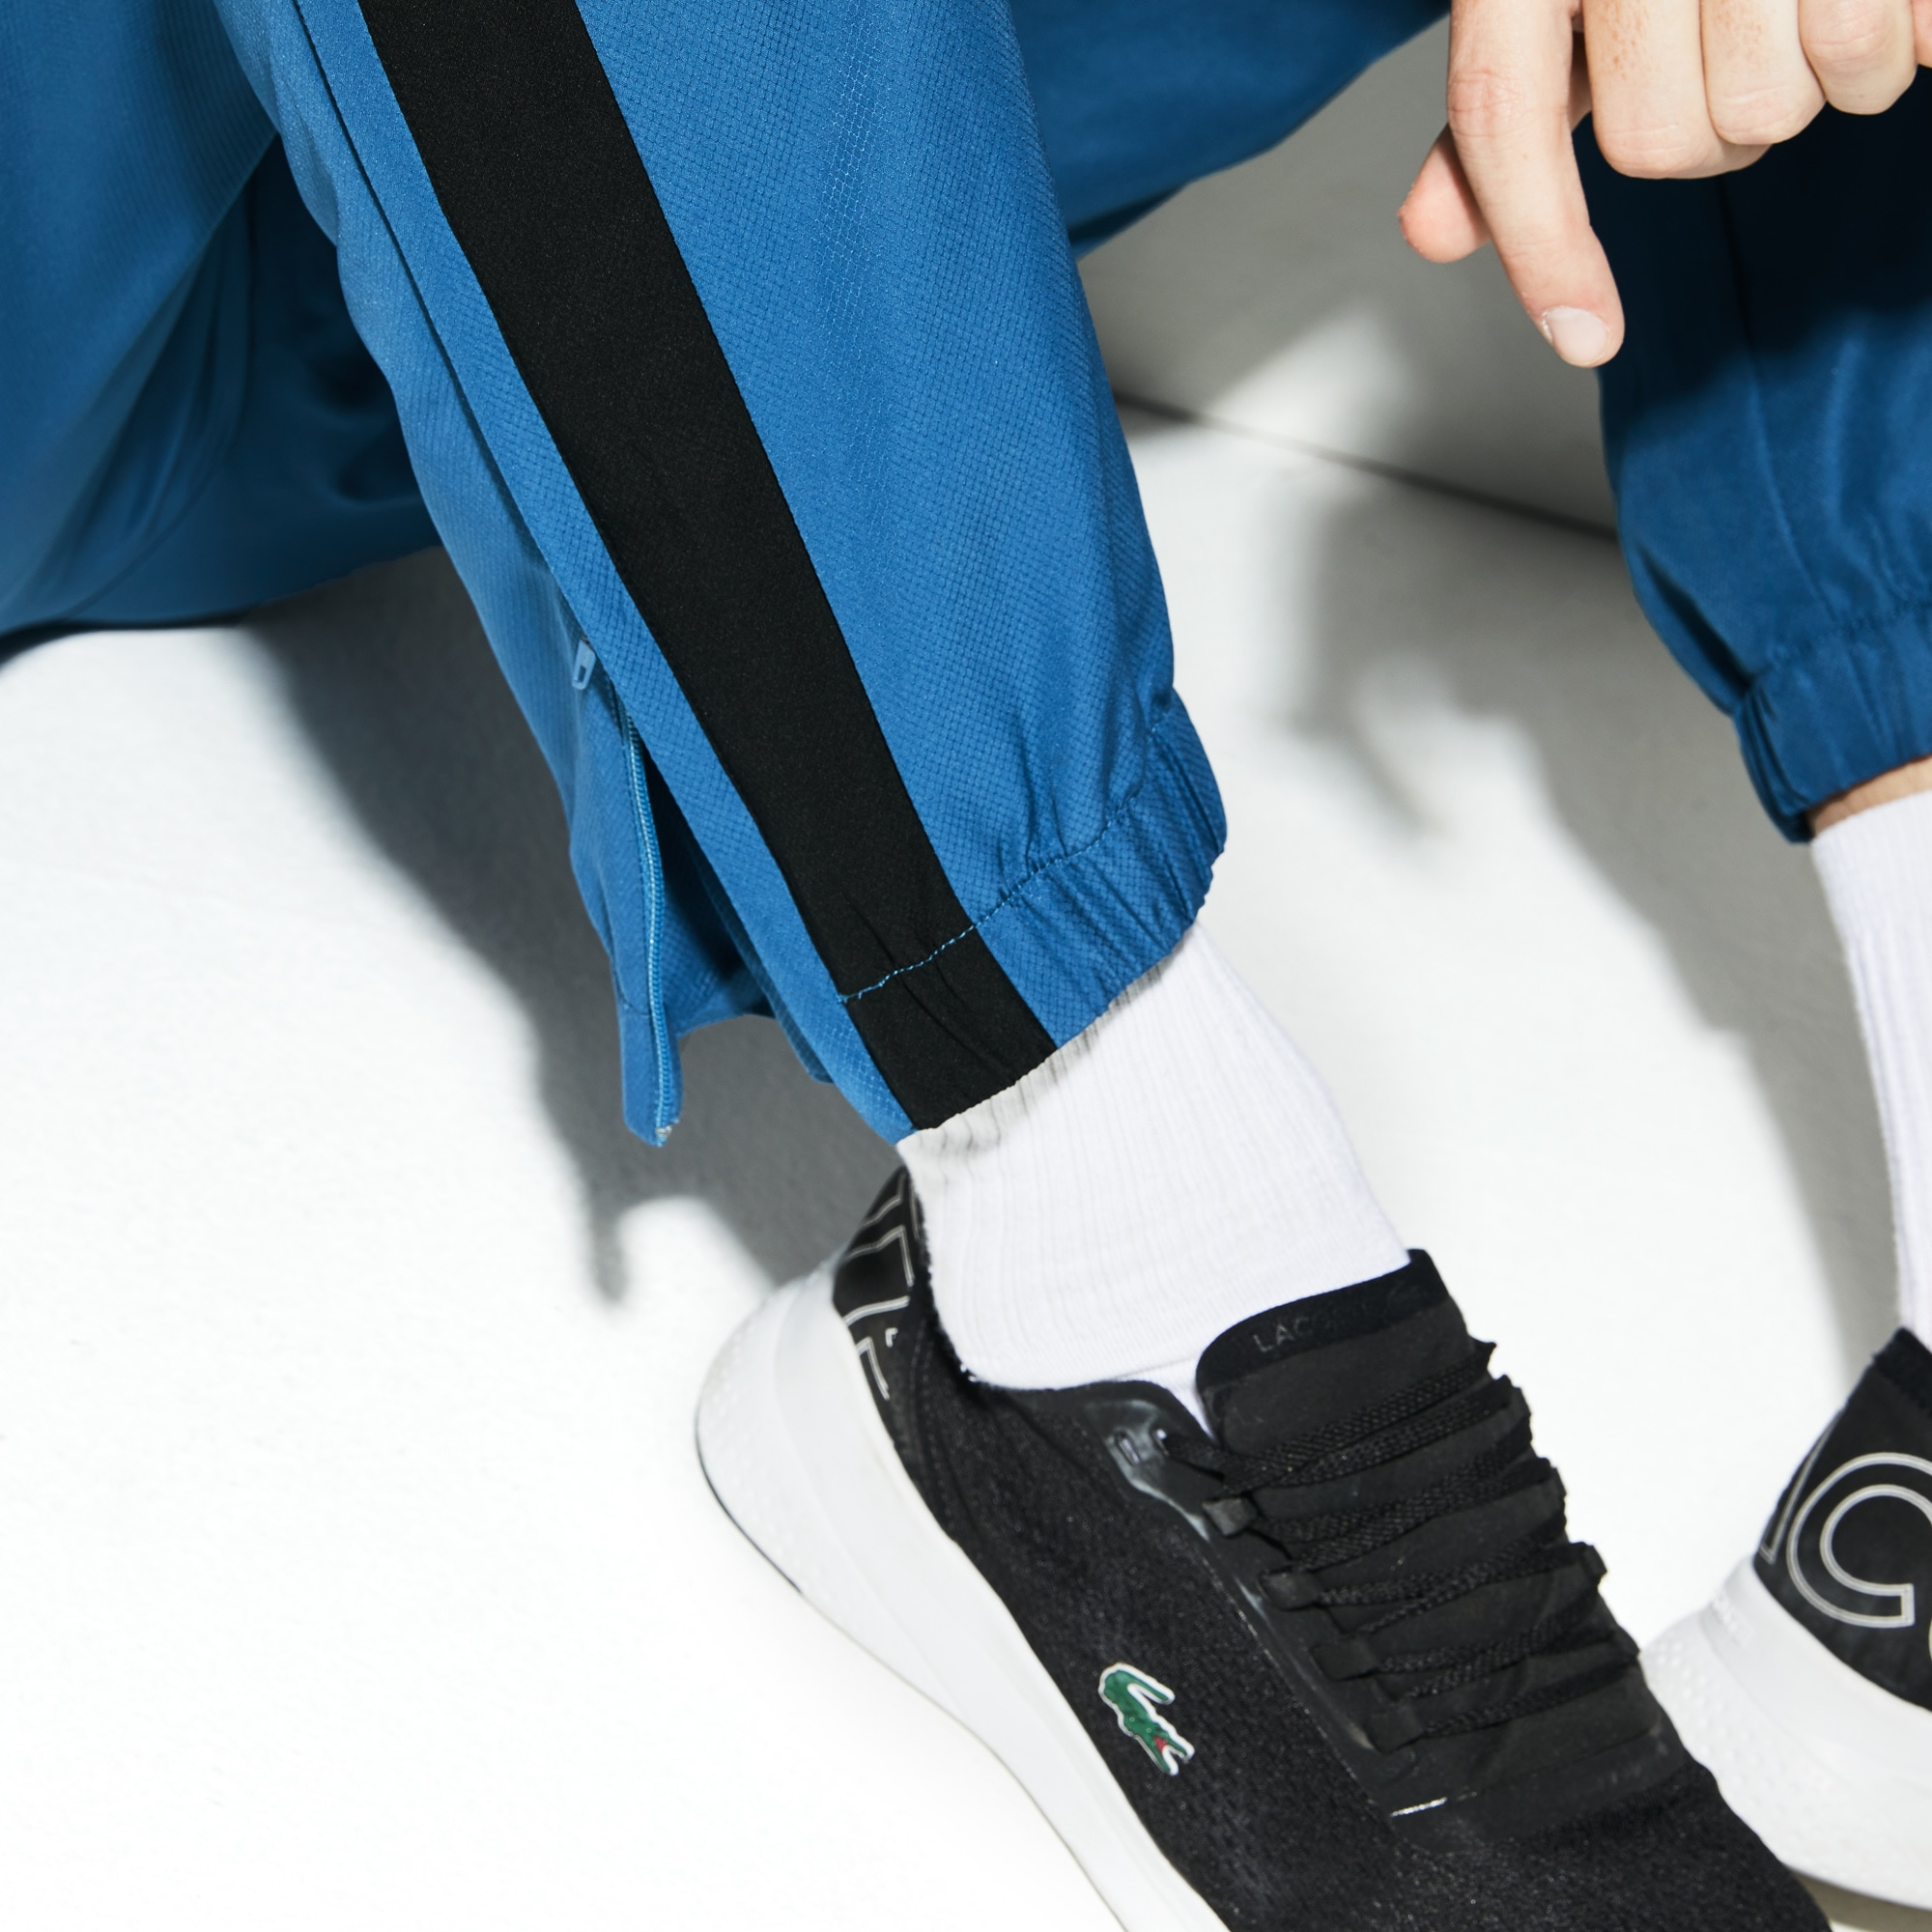 Men's Lacoste SPORT Colourblock Band Tennis Sweatpants